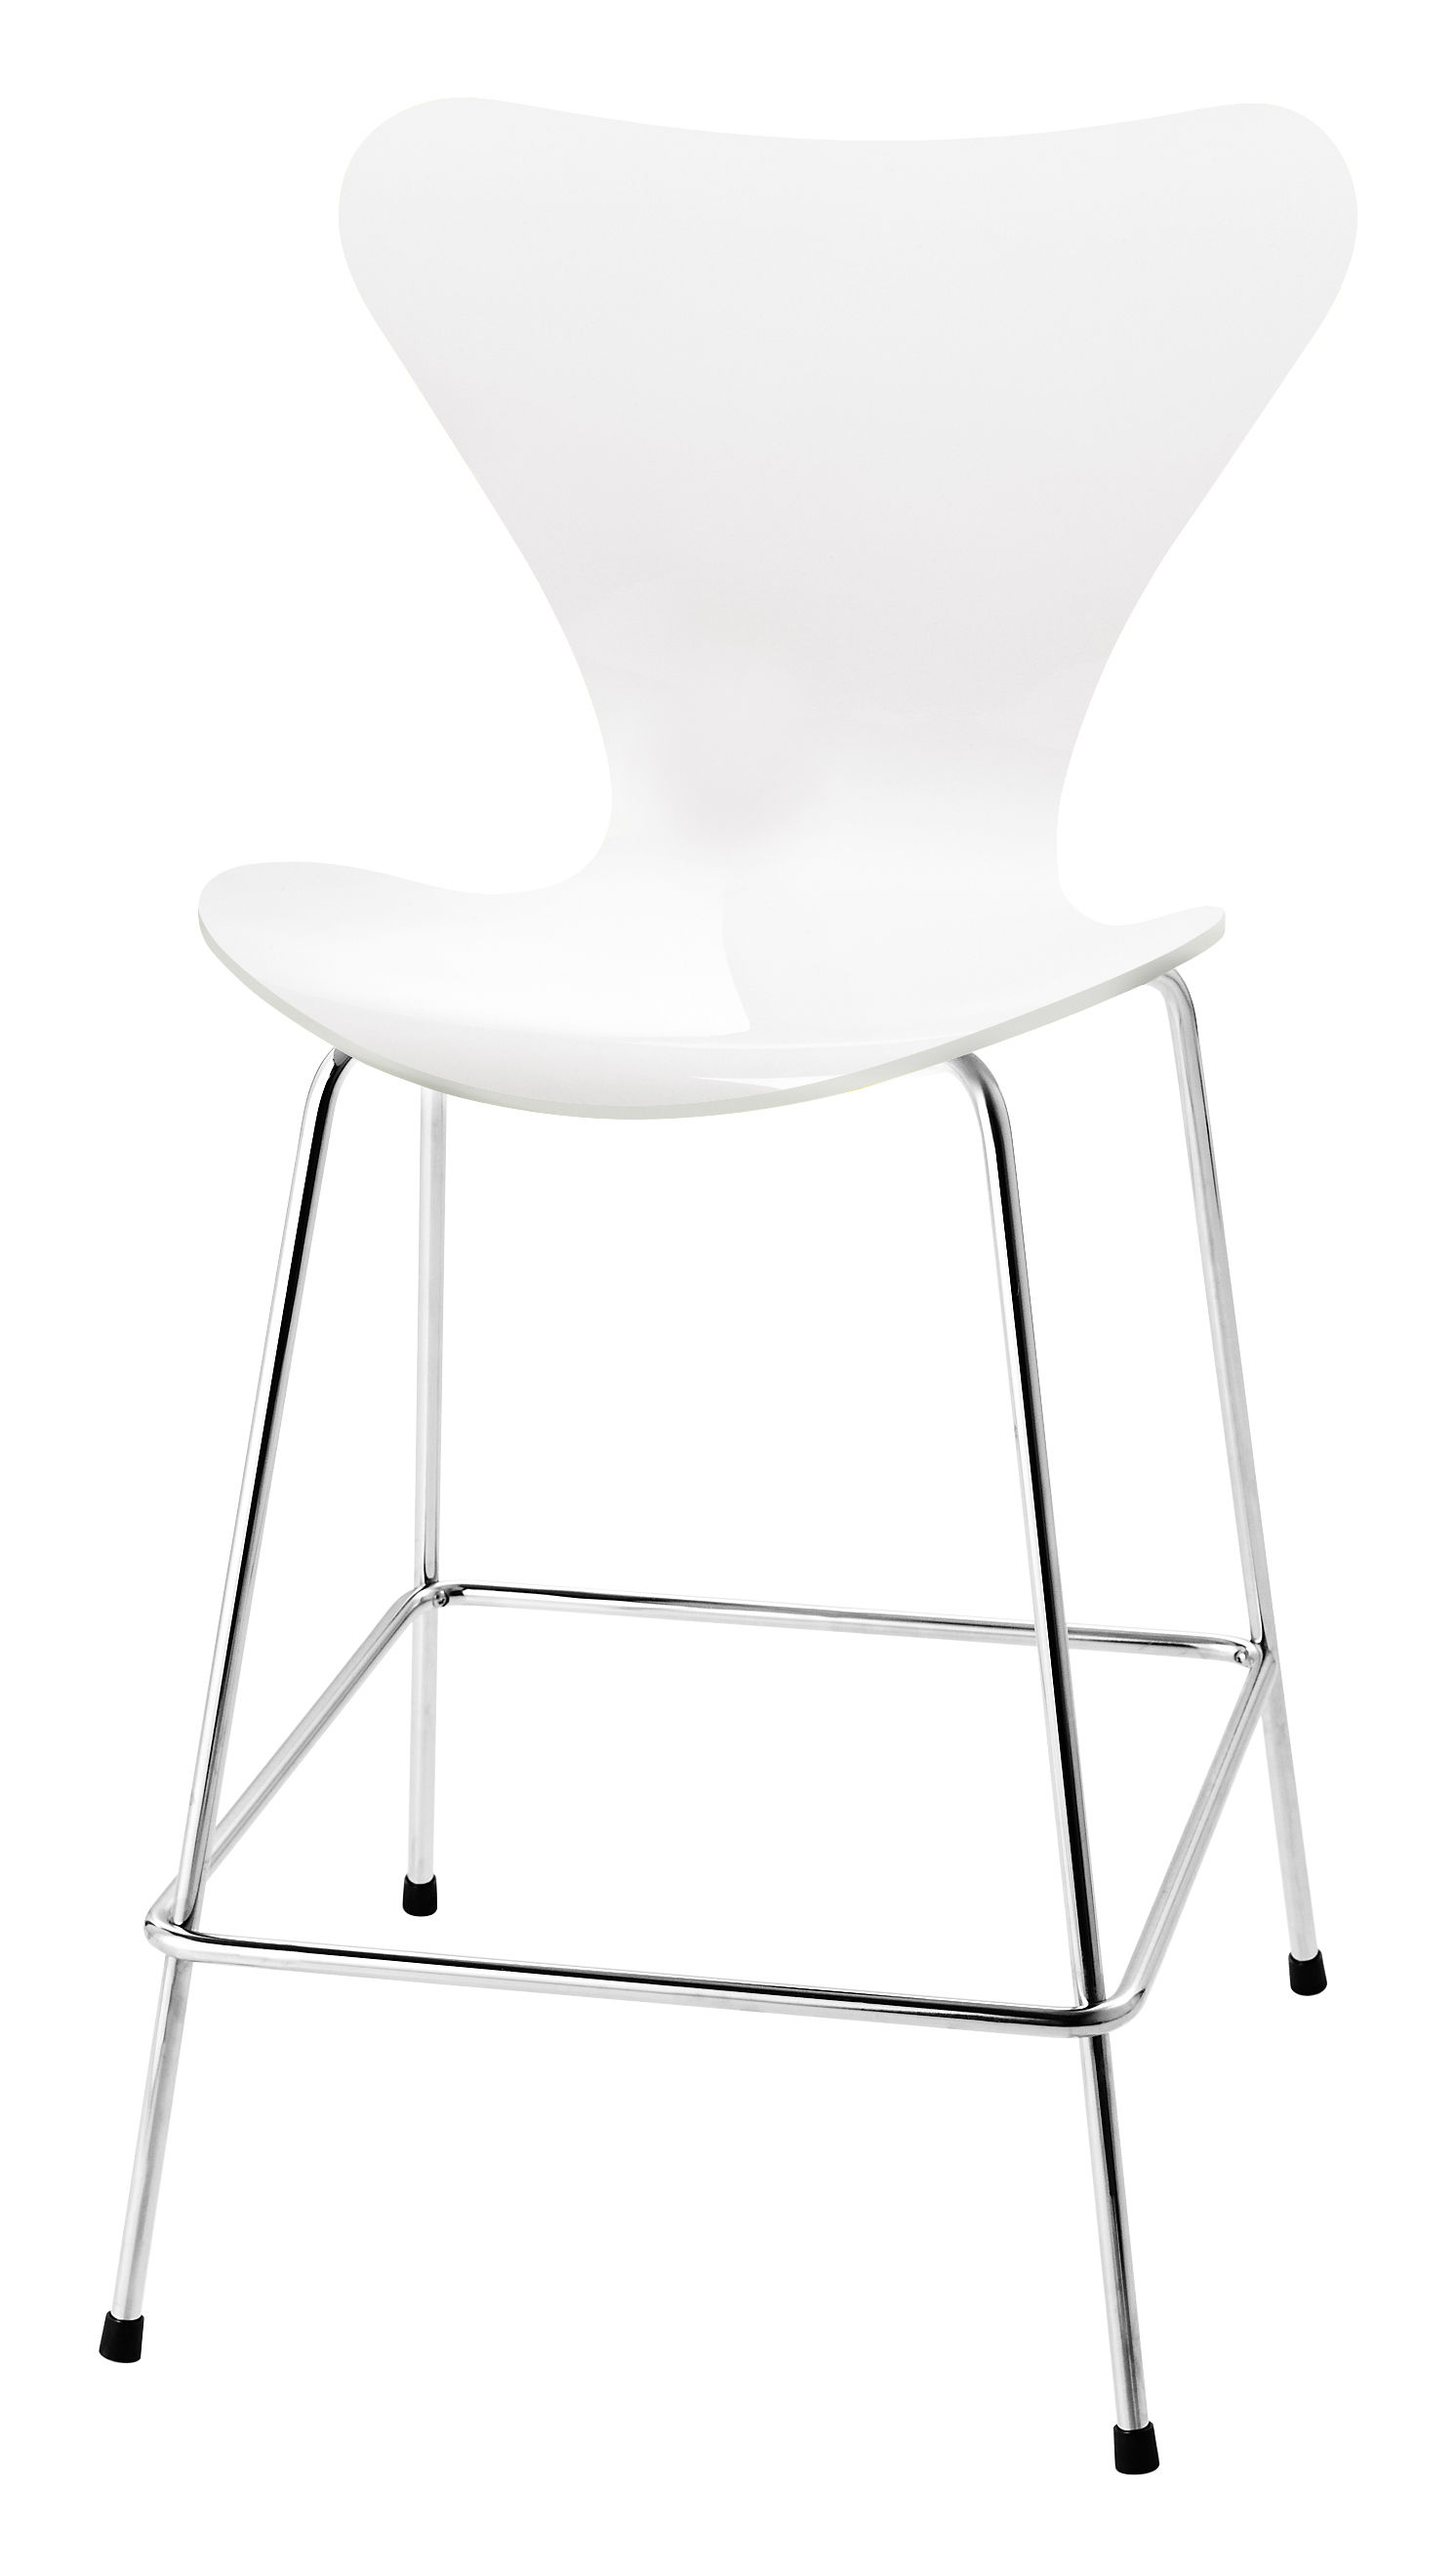 Furniture - Bar Stools - Série 7 Bar chair - H 76 cm - Lacqured wood by Fritz Hansen - White lacquered - Lacquered plywood, Steel